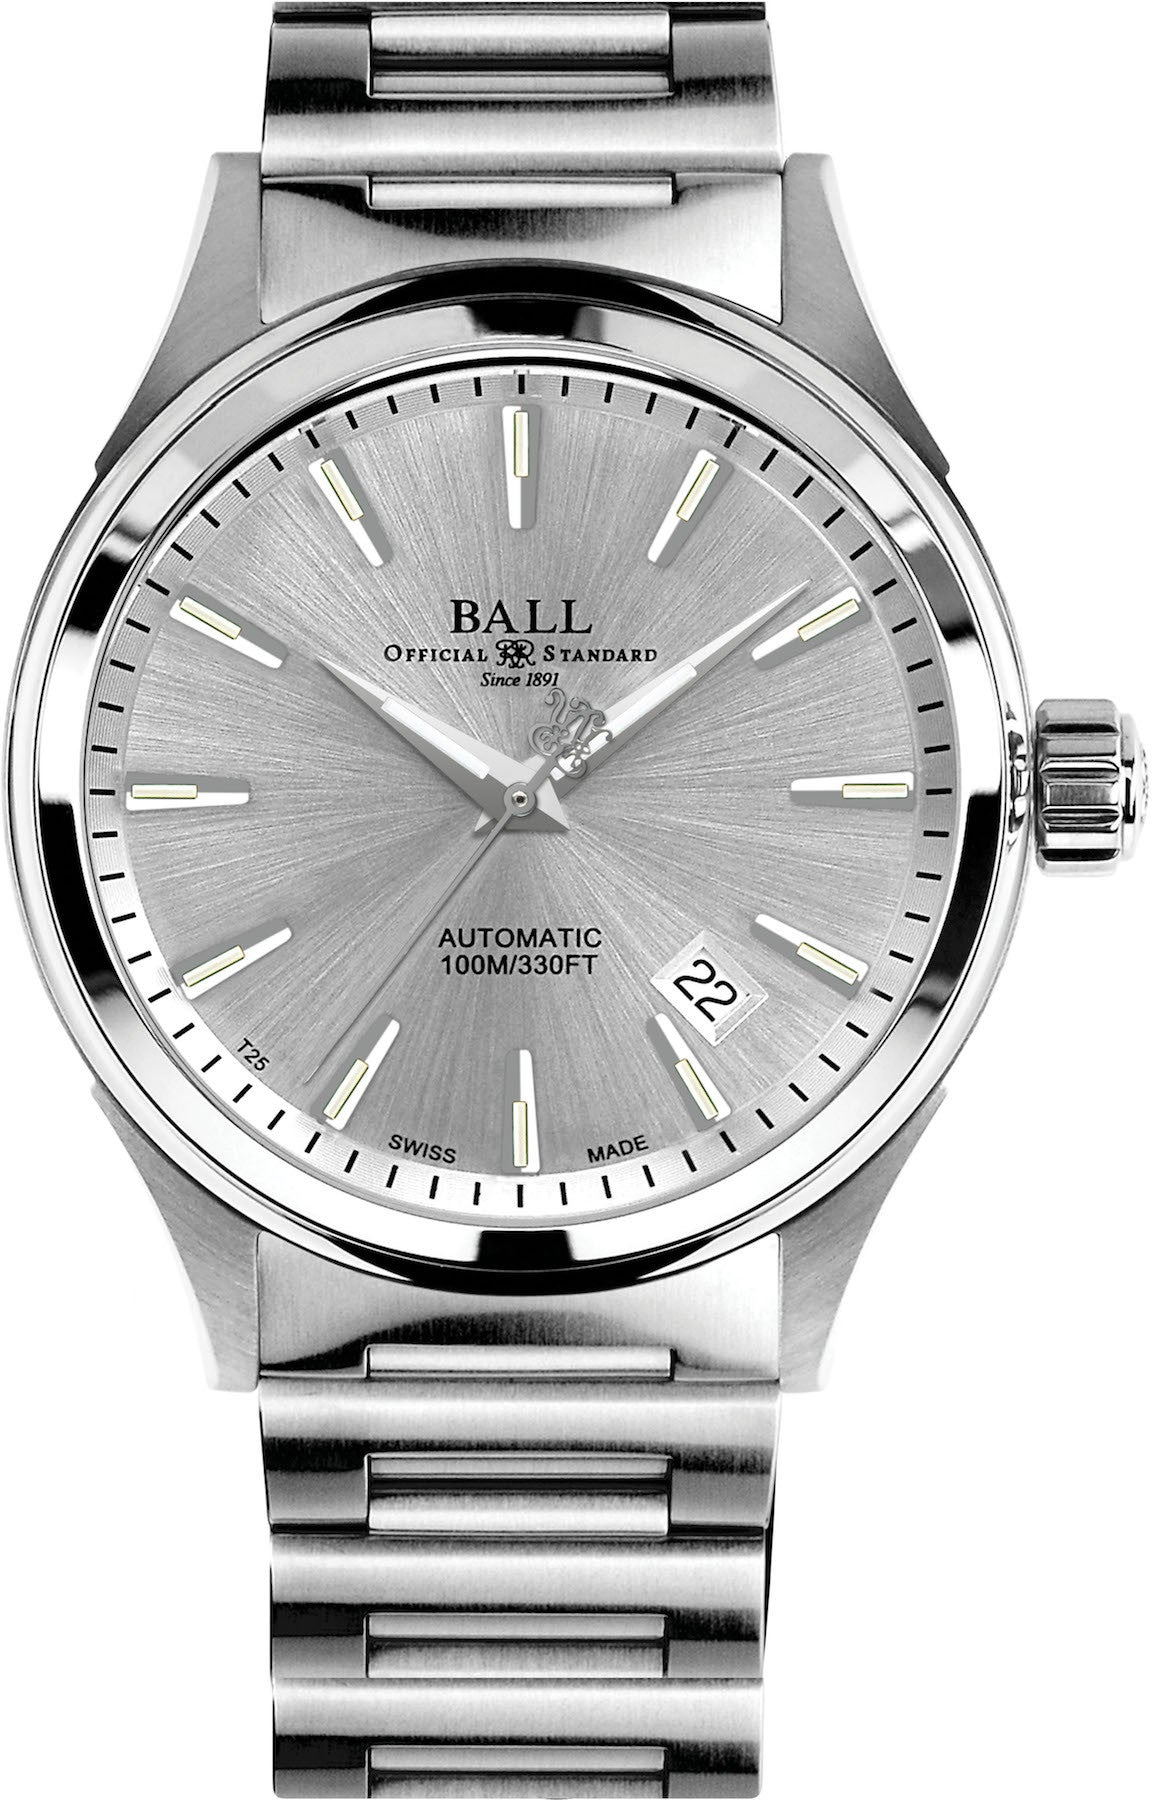 Ball Watch Company Fireman Victory